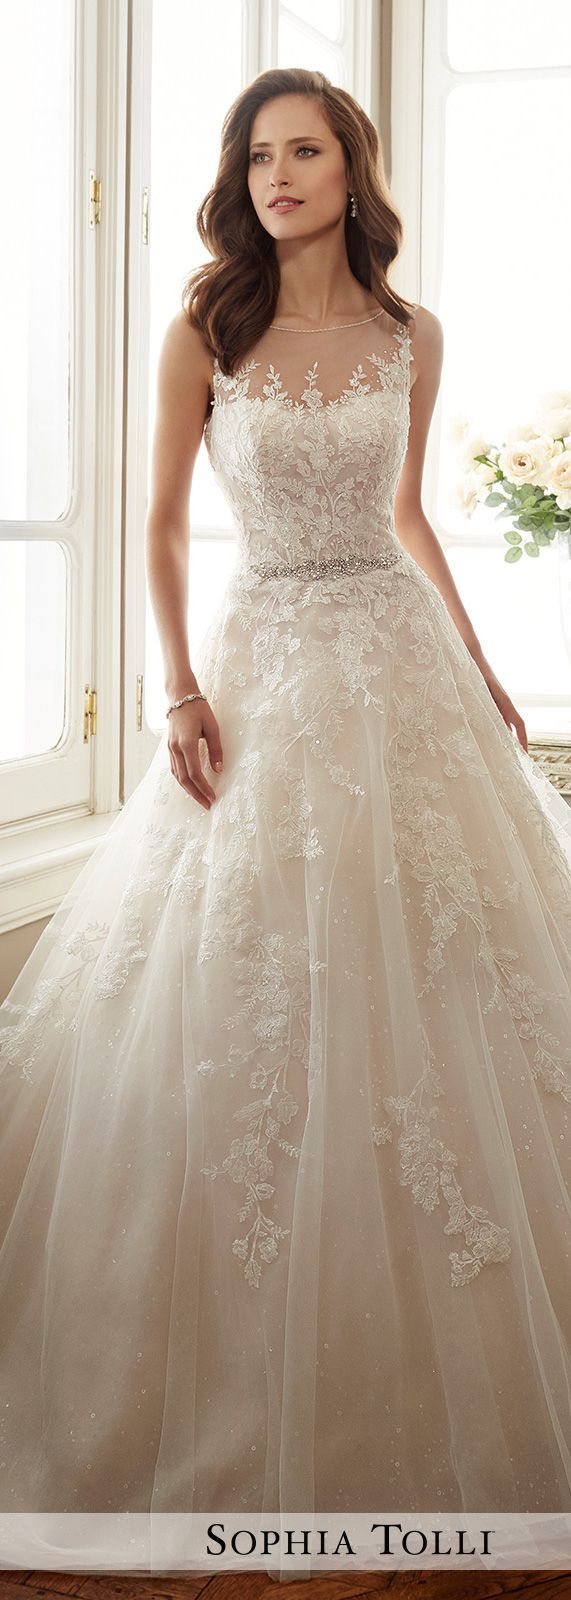 Sleeveless Misty Tulle Full A-Line Gown - Sophia Tolli Y11719